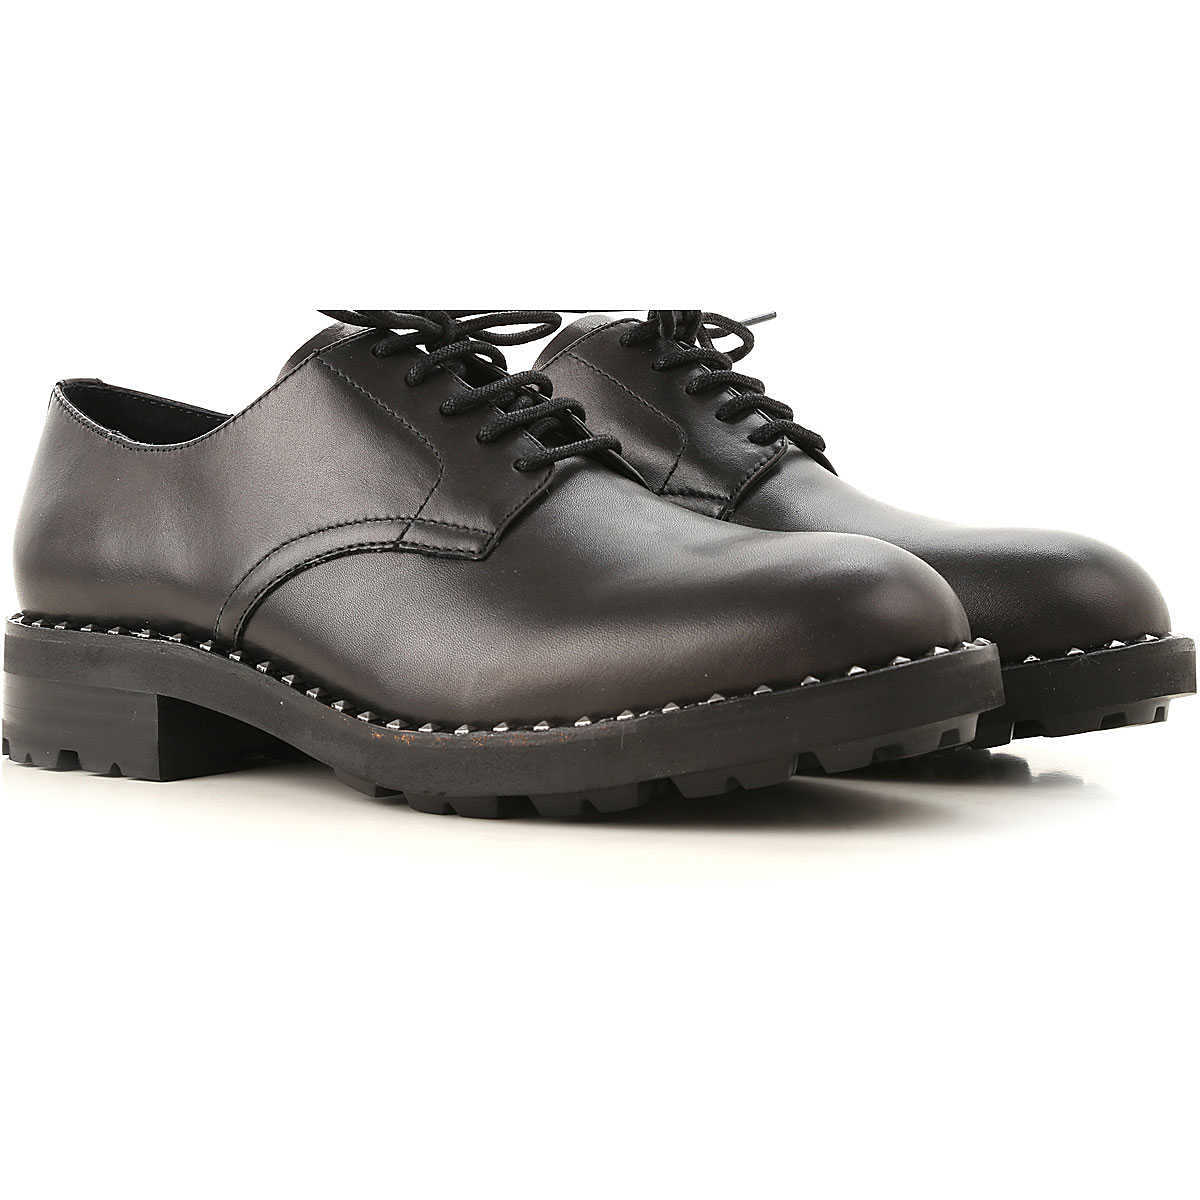 Ash Womens Shoes in Outlet Black Canada - GOOFASH -